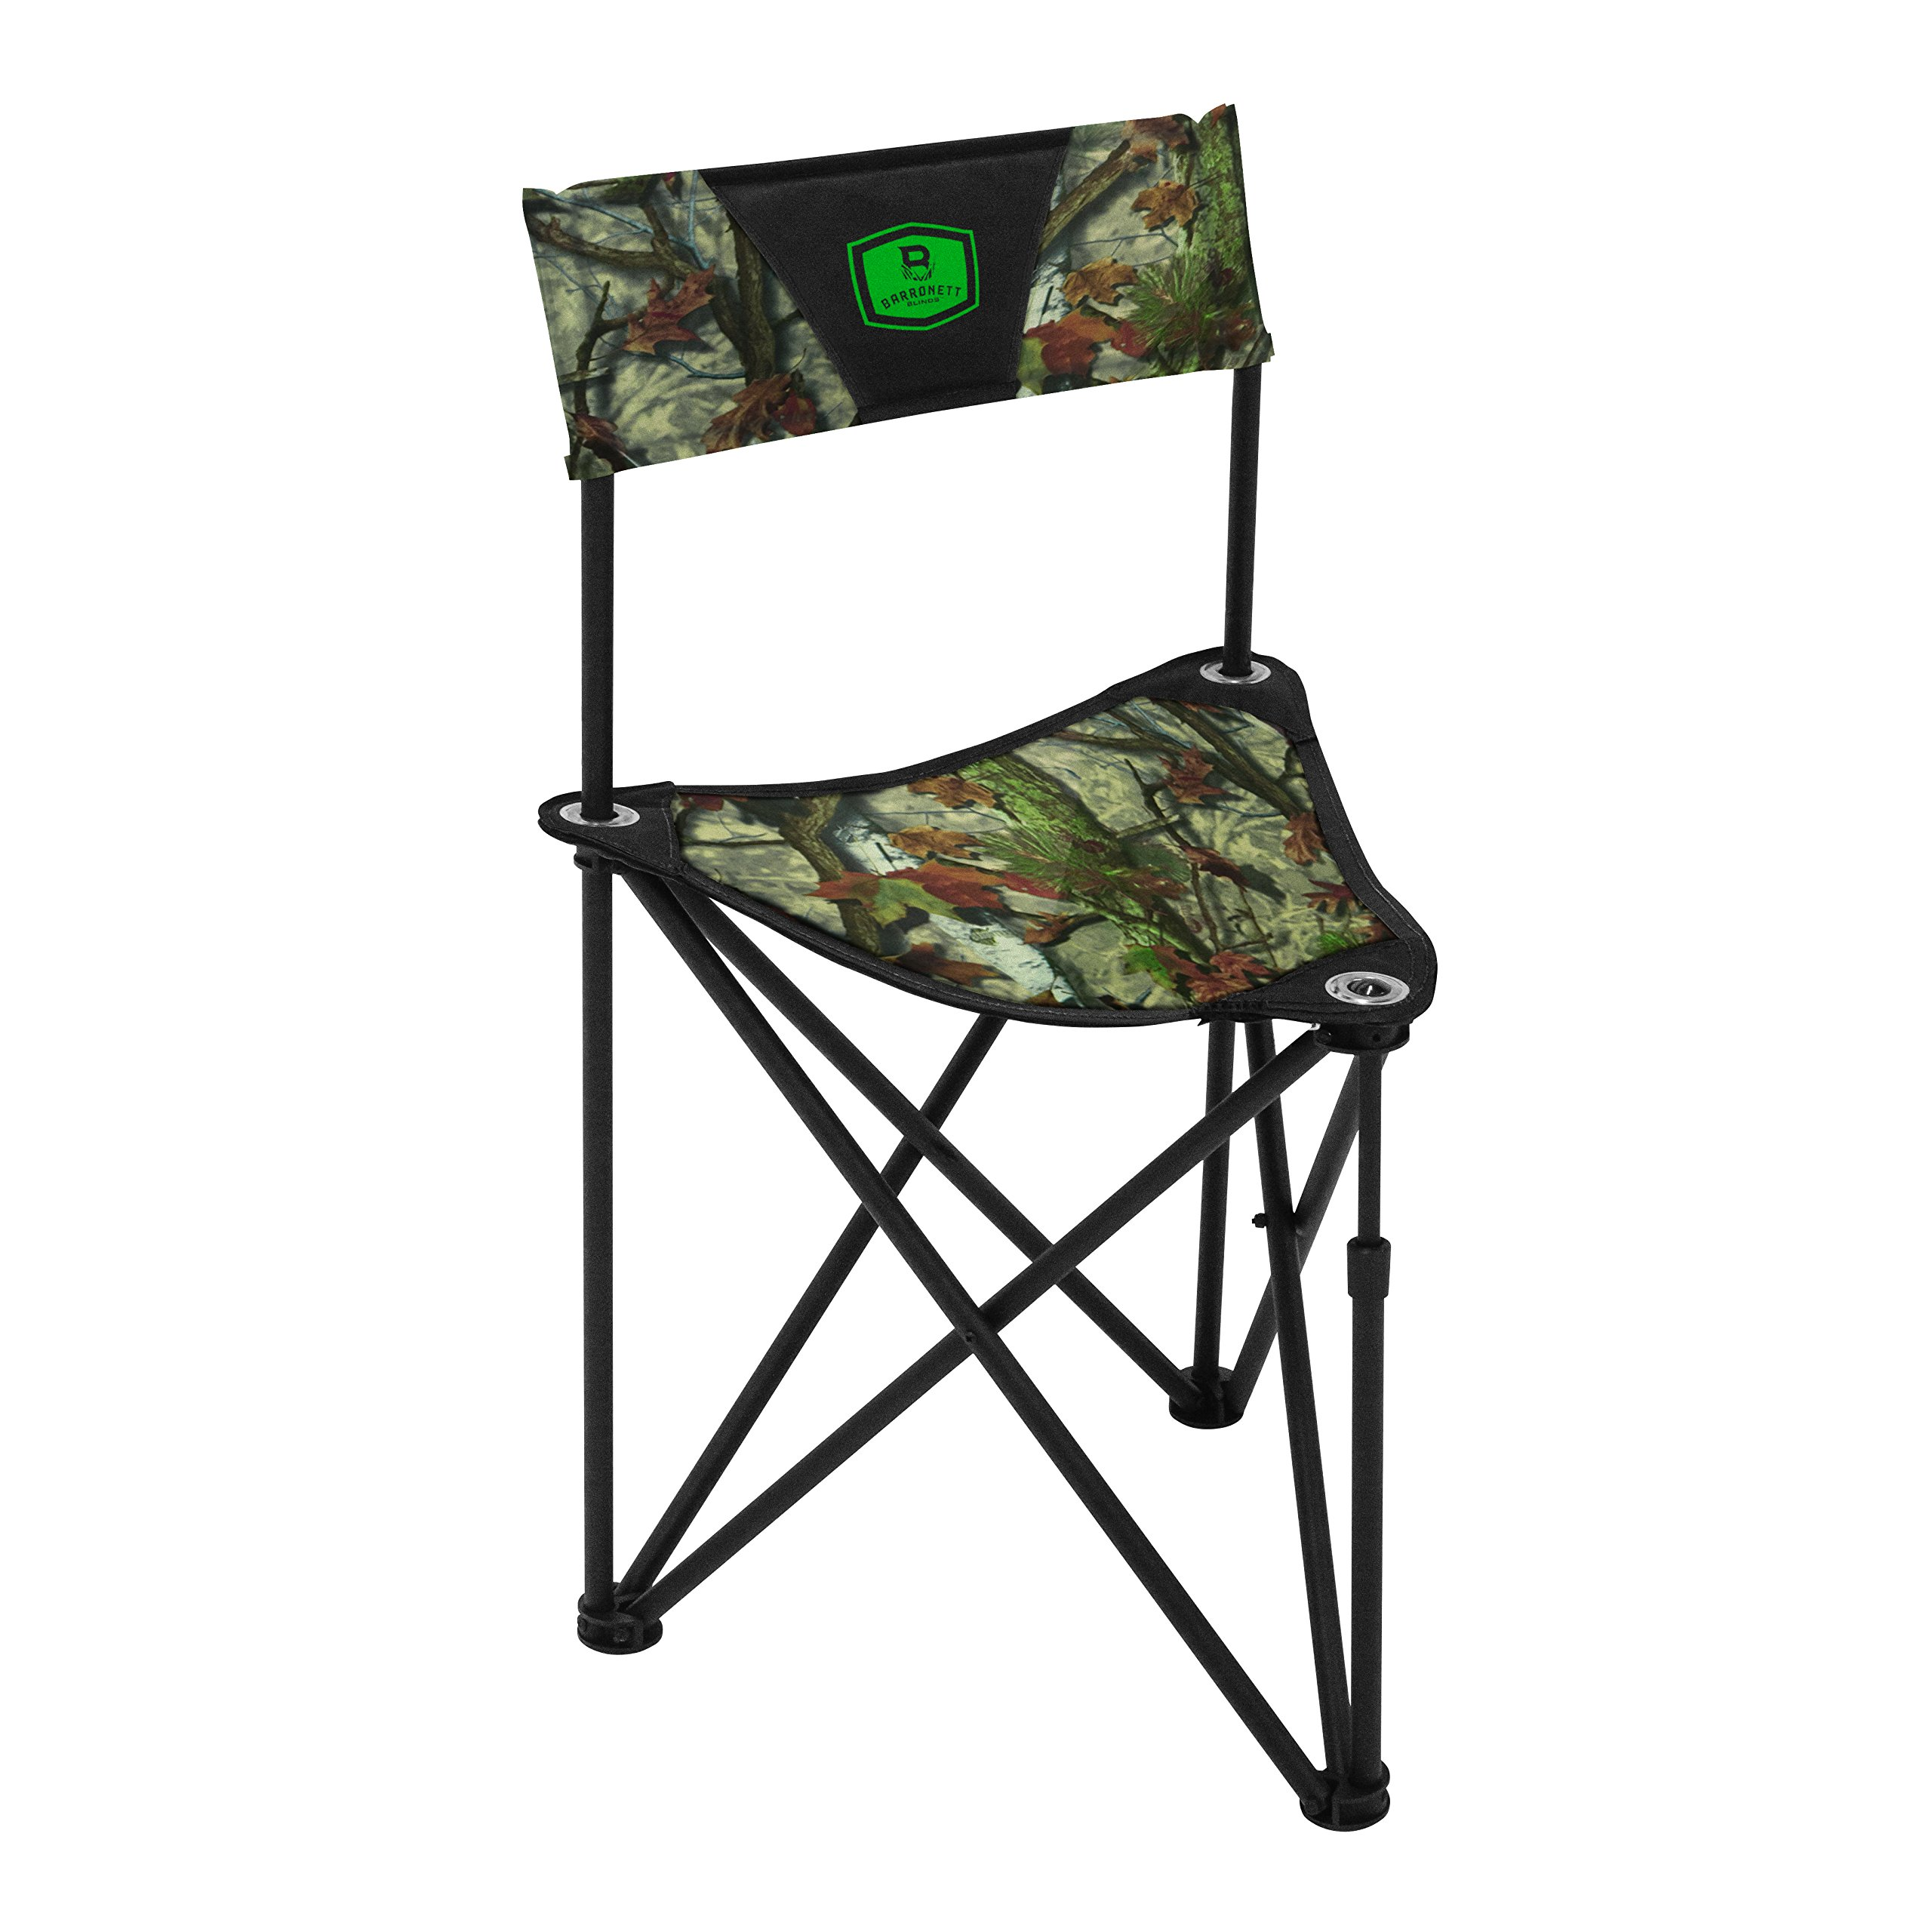 Barronett Blinds BC101 Tripod XL Folding Hunting Chair, Bloodtrail Camo by Barronett Blinds (Image #2)